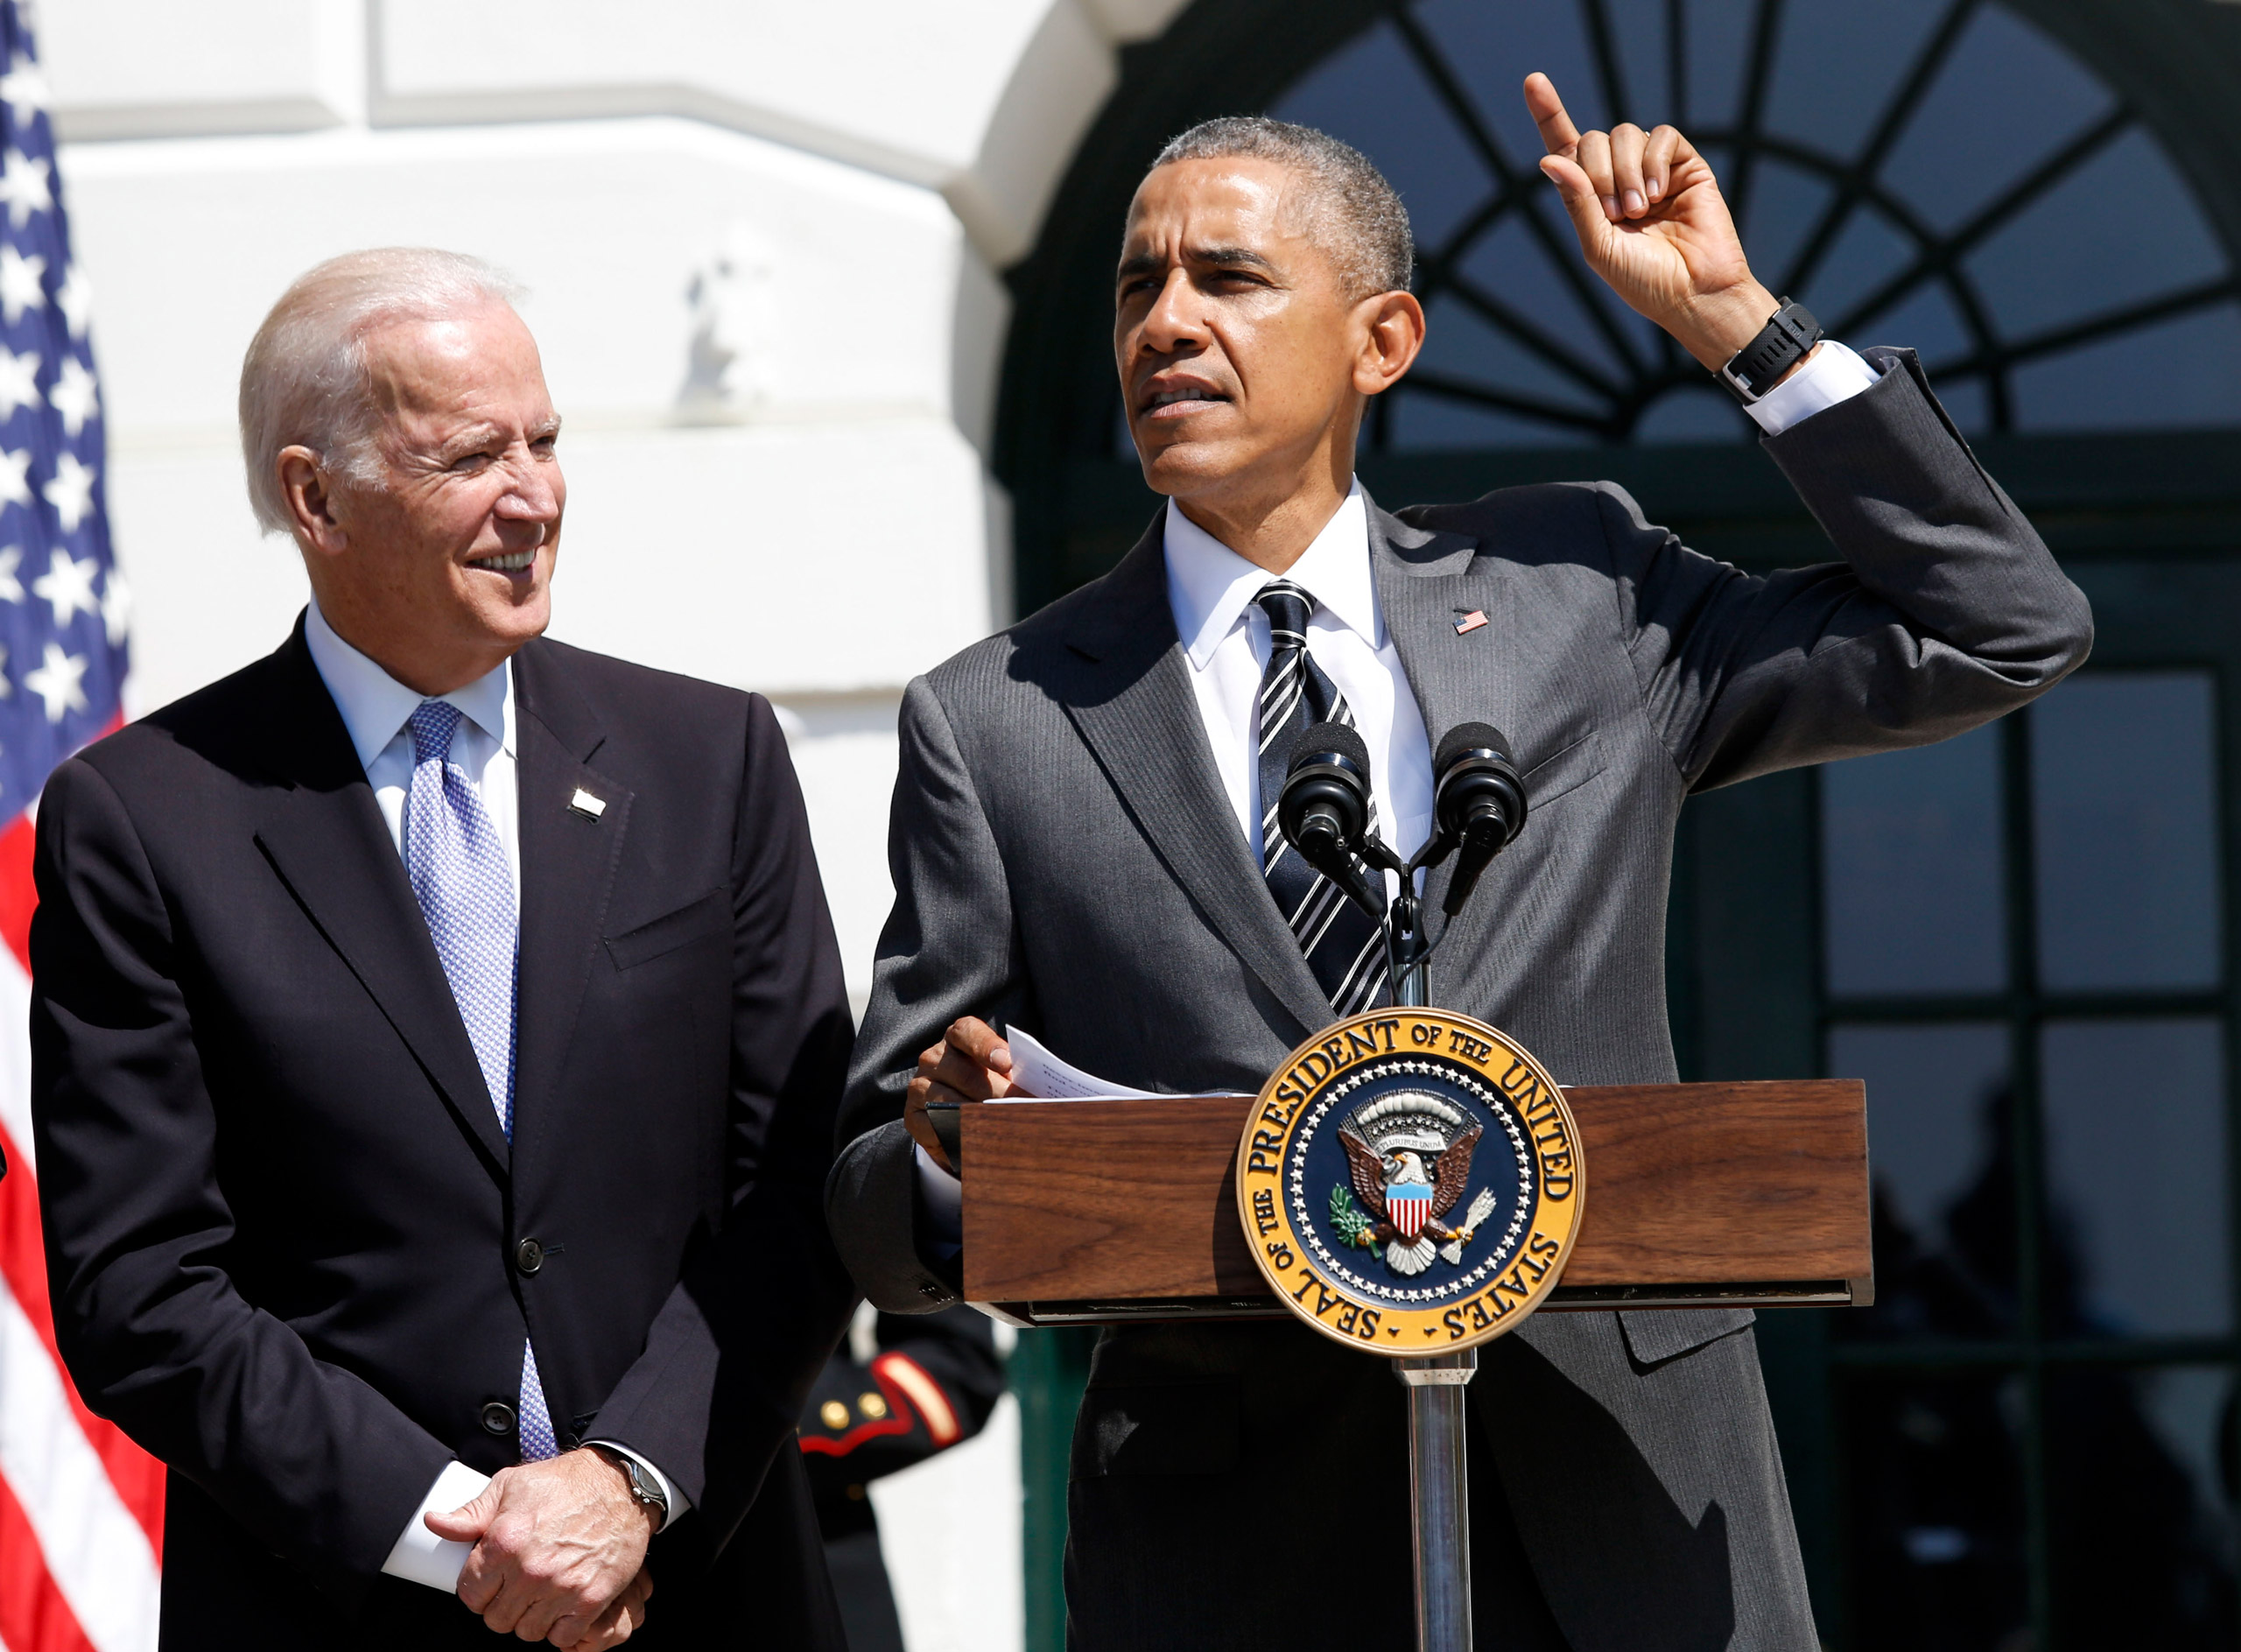 President Barack Obama speaks during the Wounded Warrior Ride event while Vice President Joe Biden listens at the White House in Washington on April 14, 2016